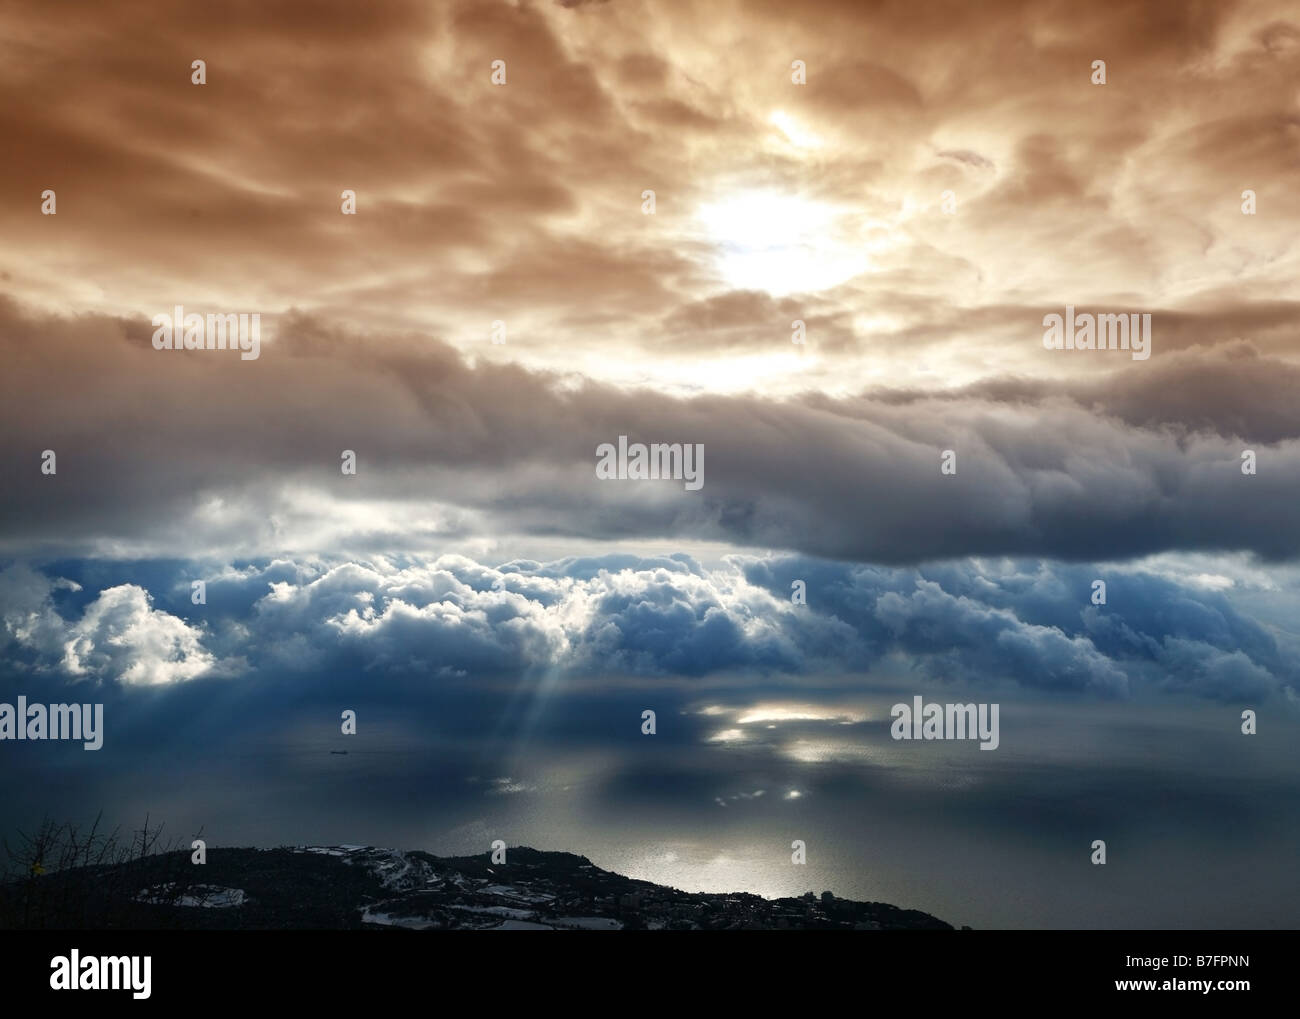 Clouds above a sea - Stock Image